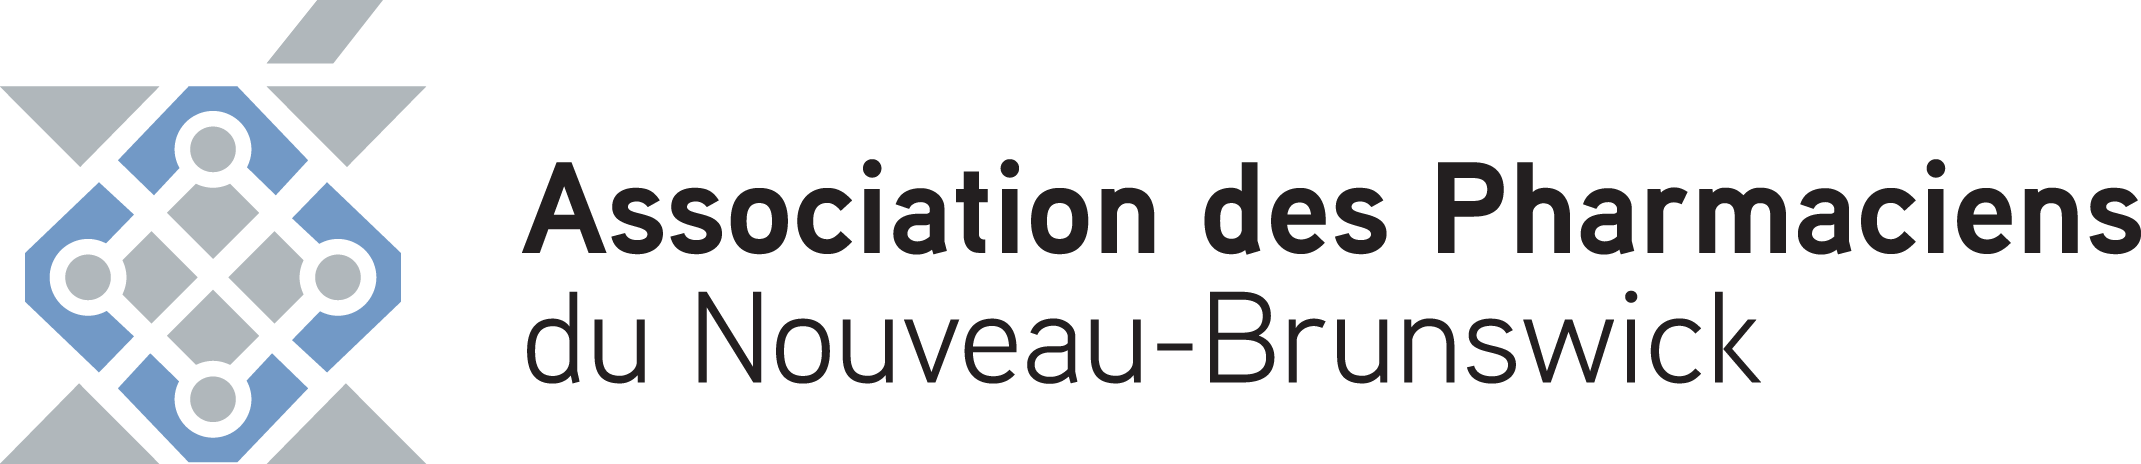 Association des pharmaciens du Nouveau-Brunswick